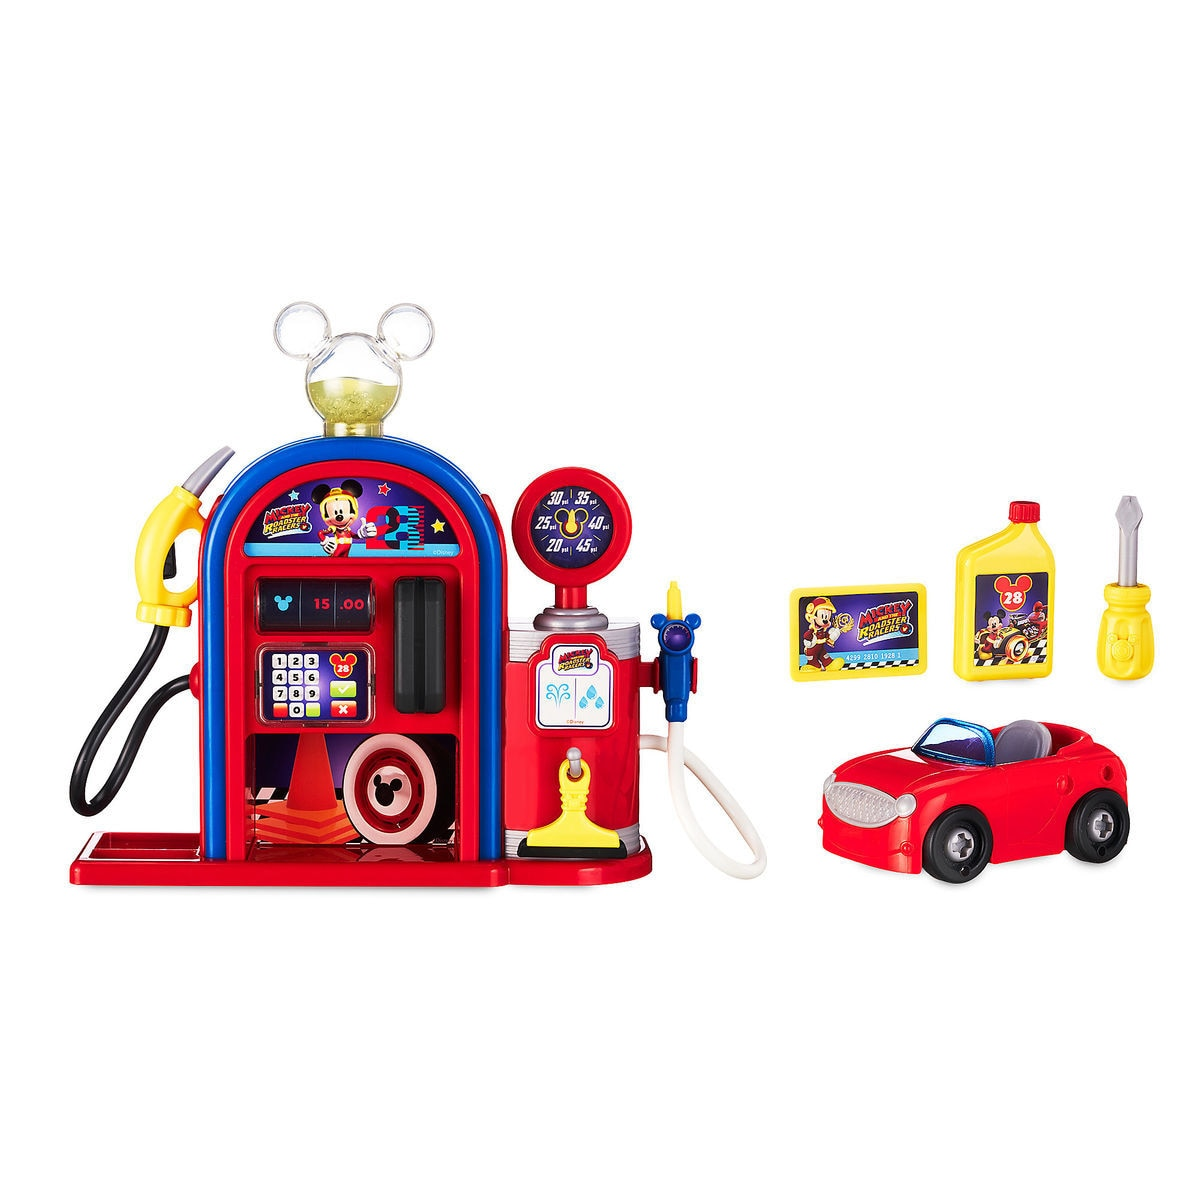 5a4ef40e8719 Mickey and the Roadster Racers Gas Station Playset